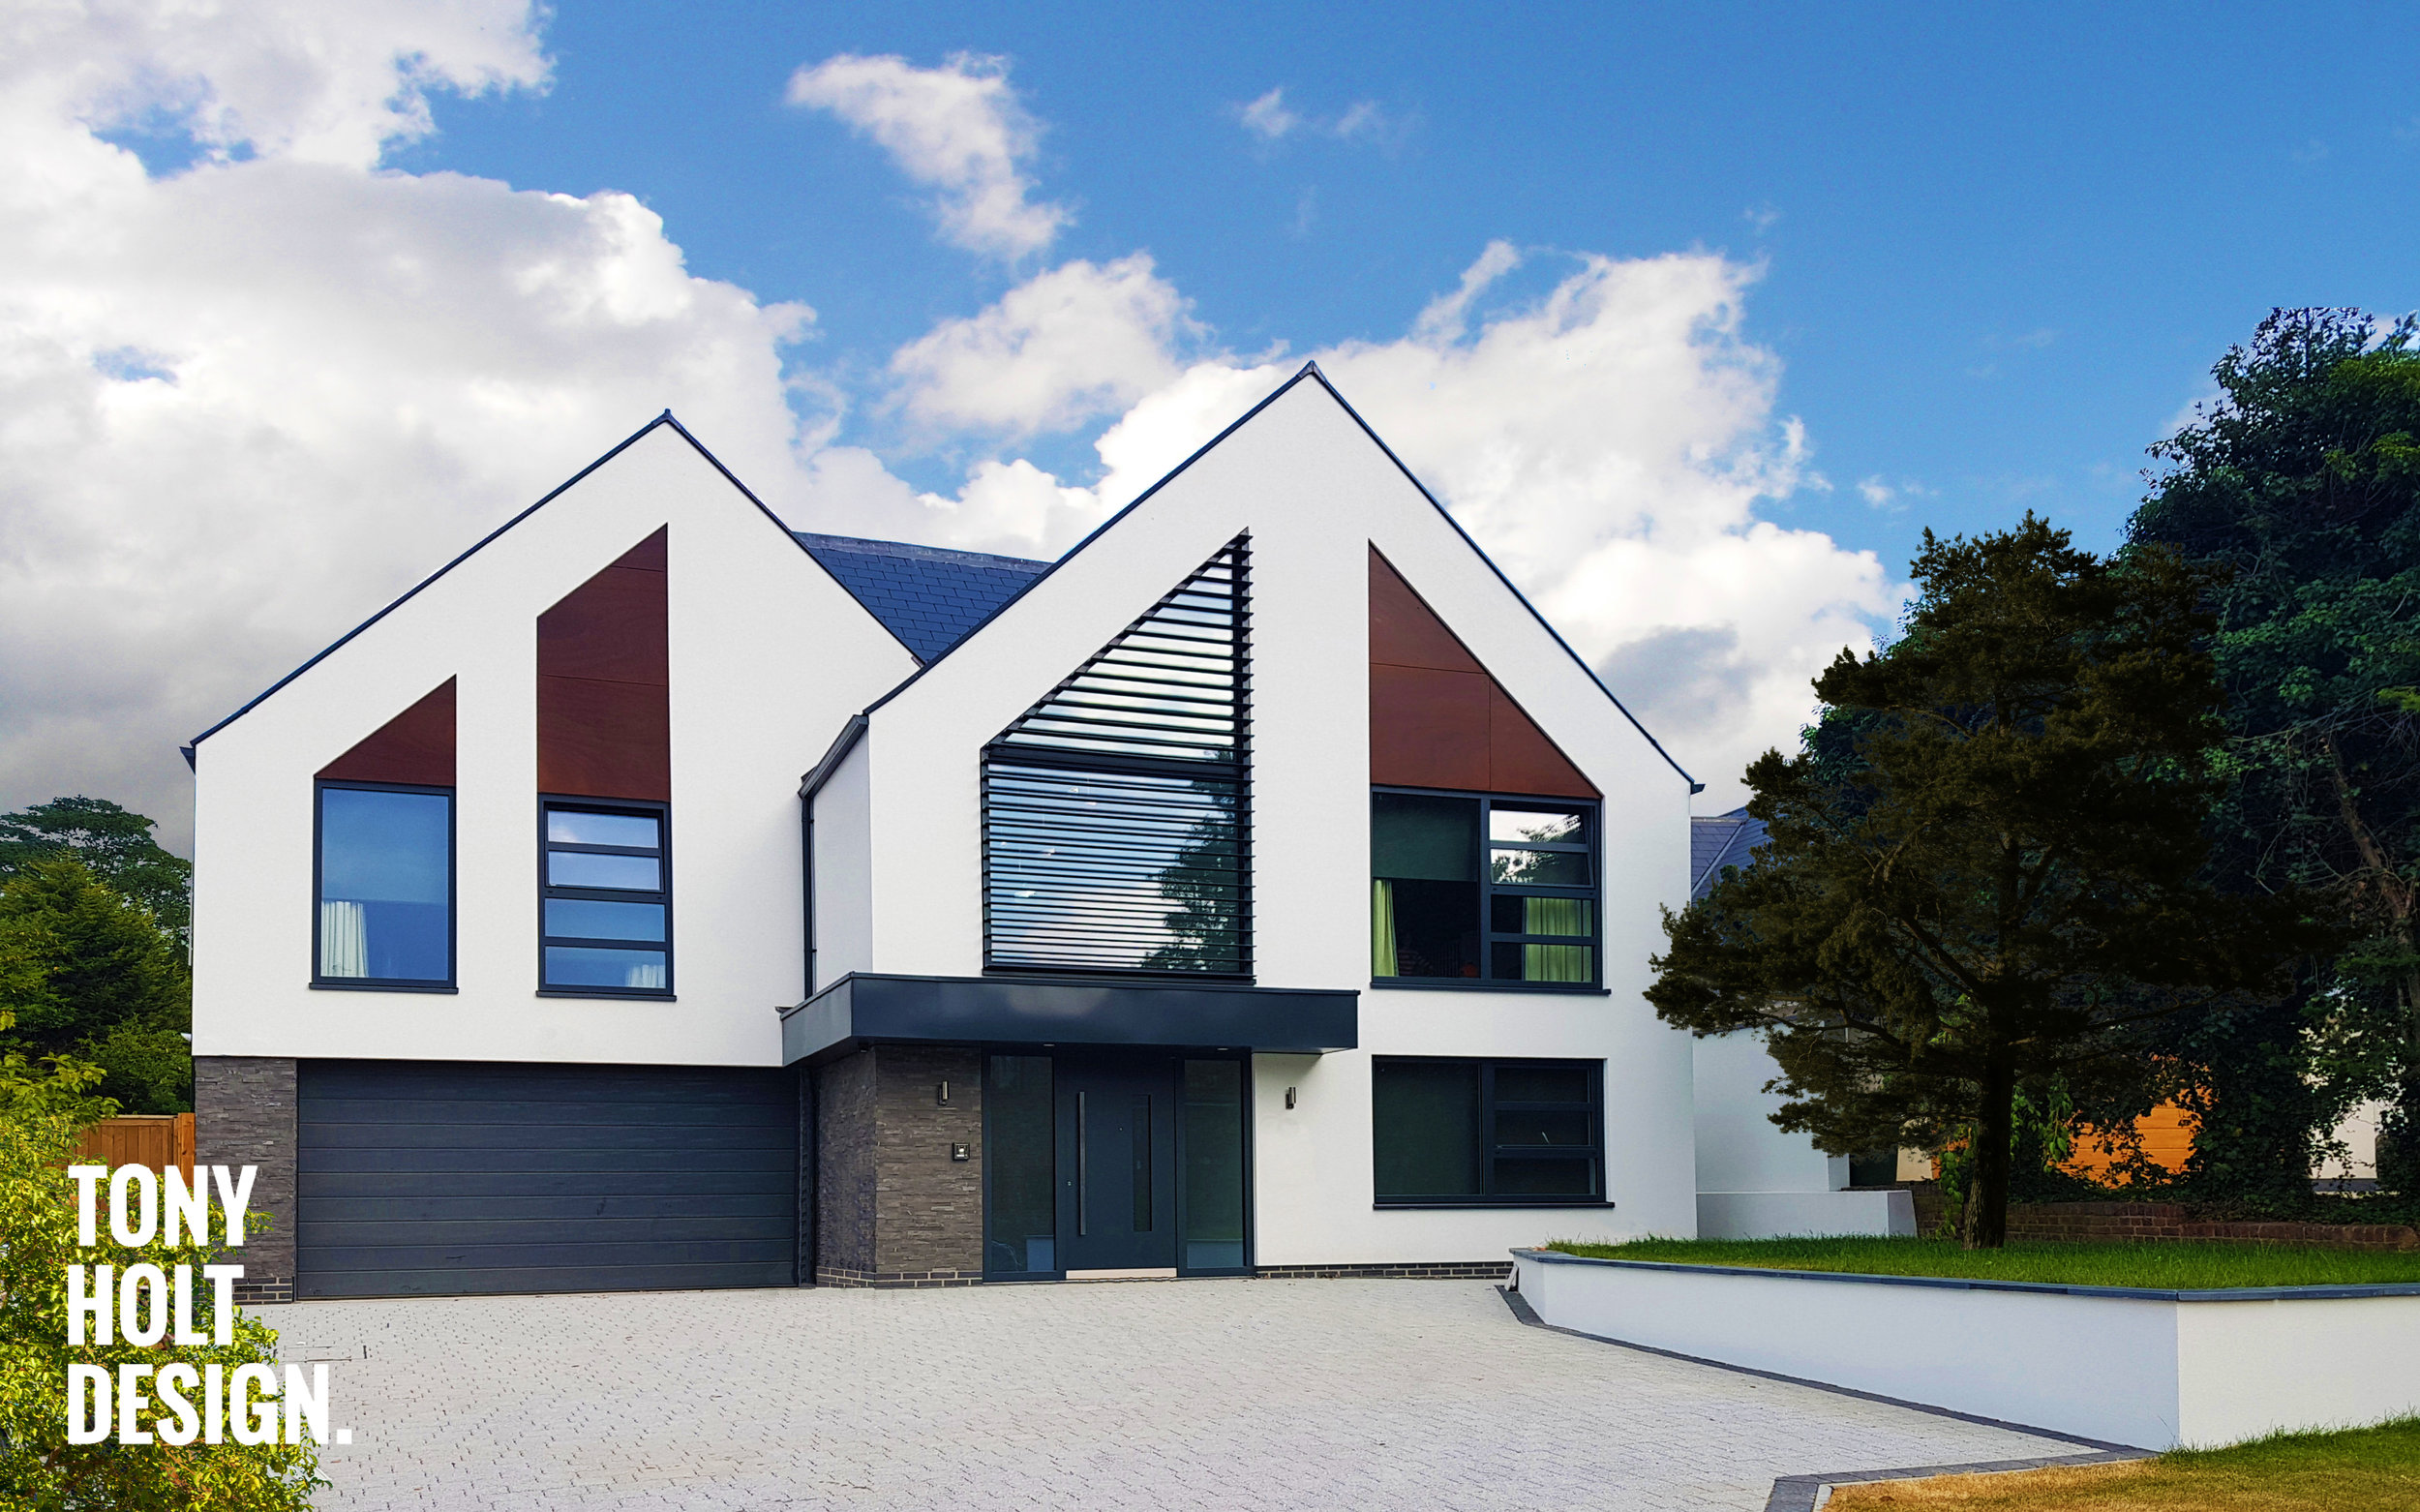 Tony Holt Design_Self Build_New Build_Exterior_01_WEB.jpg